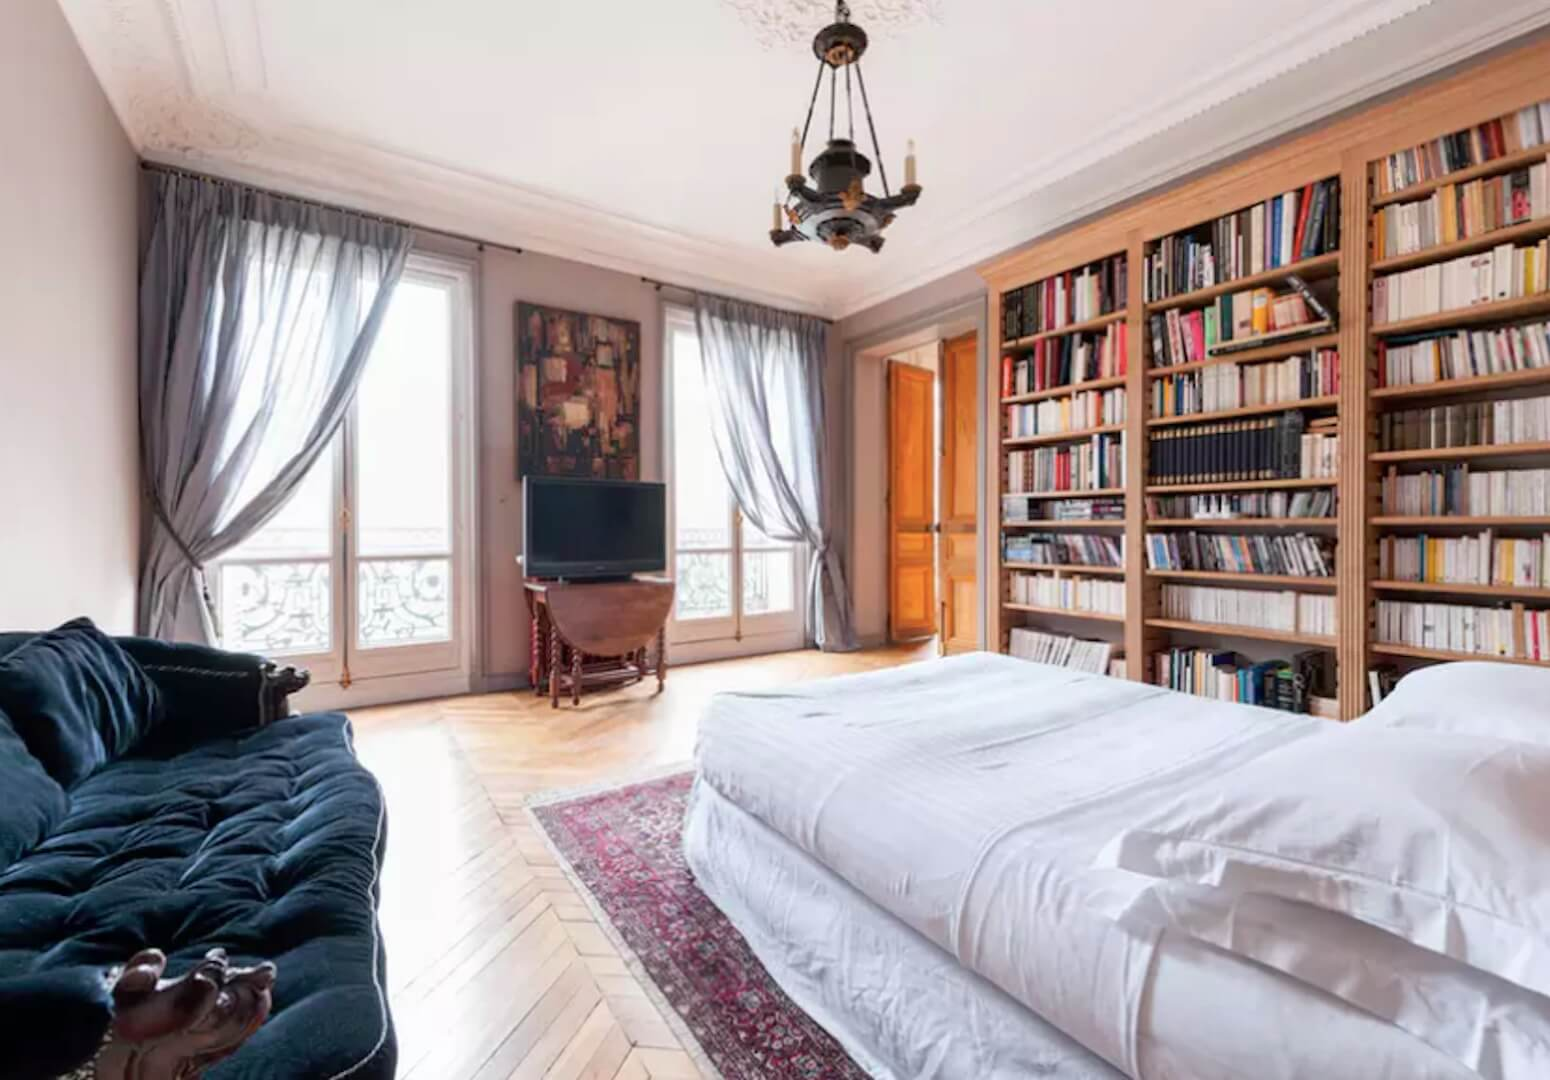 est living travel paris guide homes left bank boulevard saint germain 4